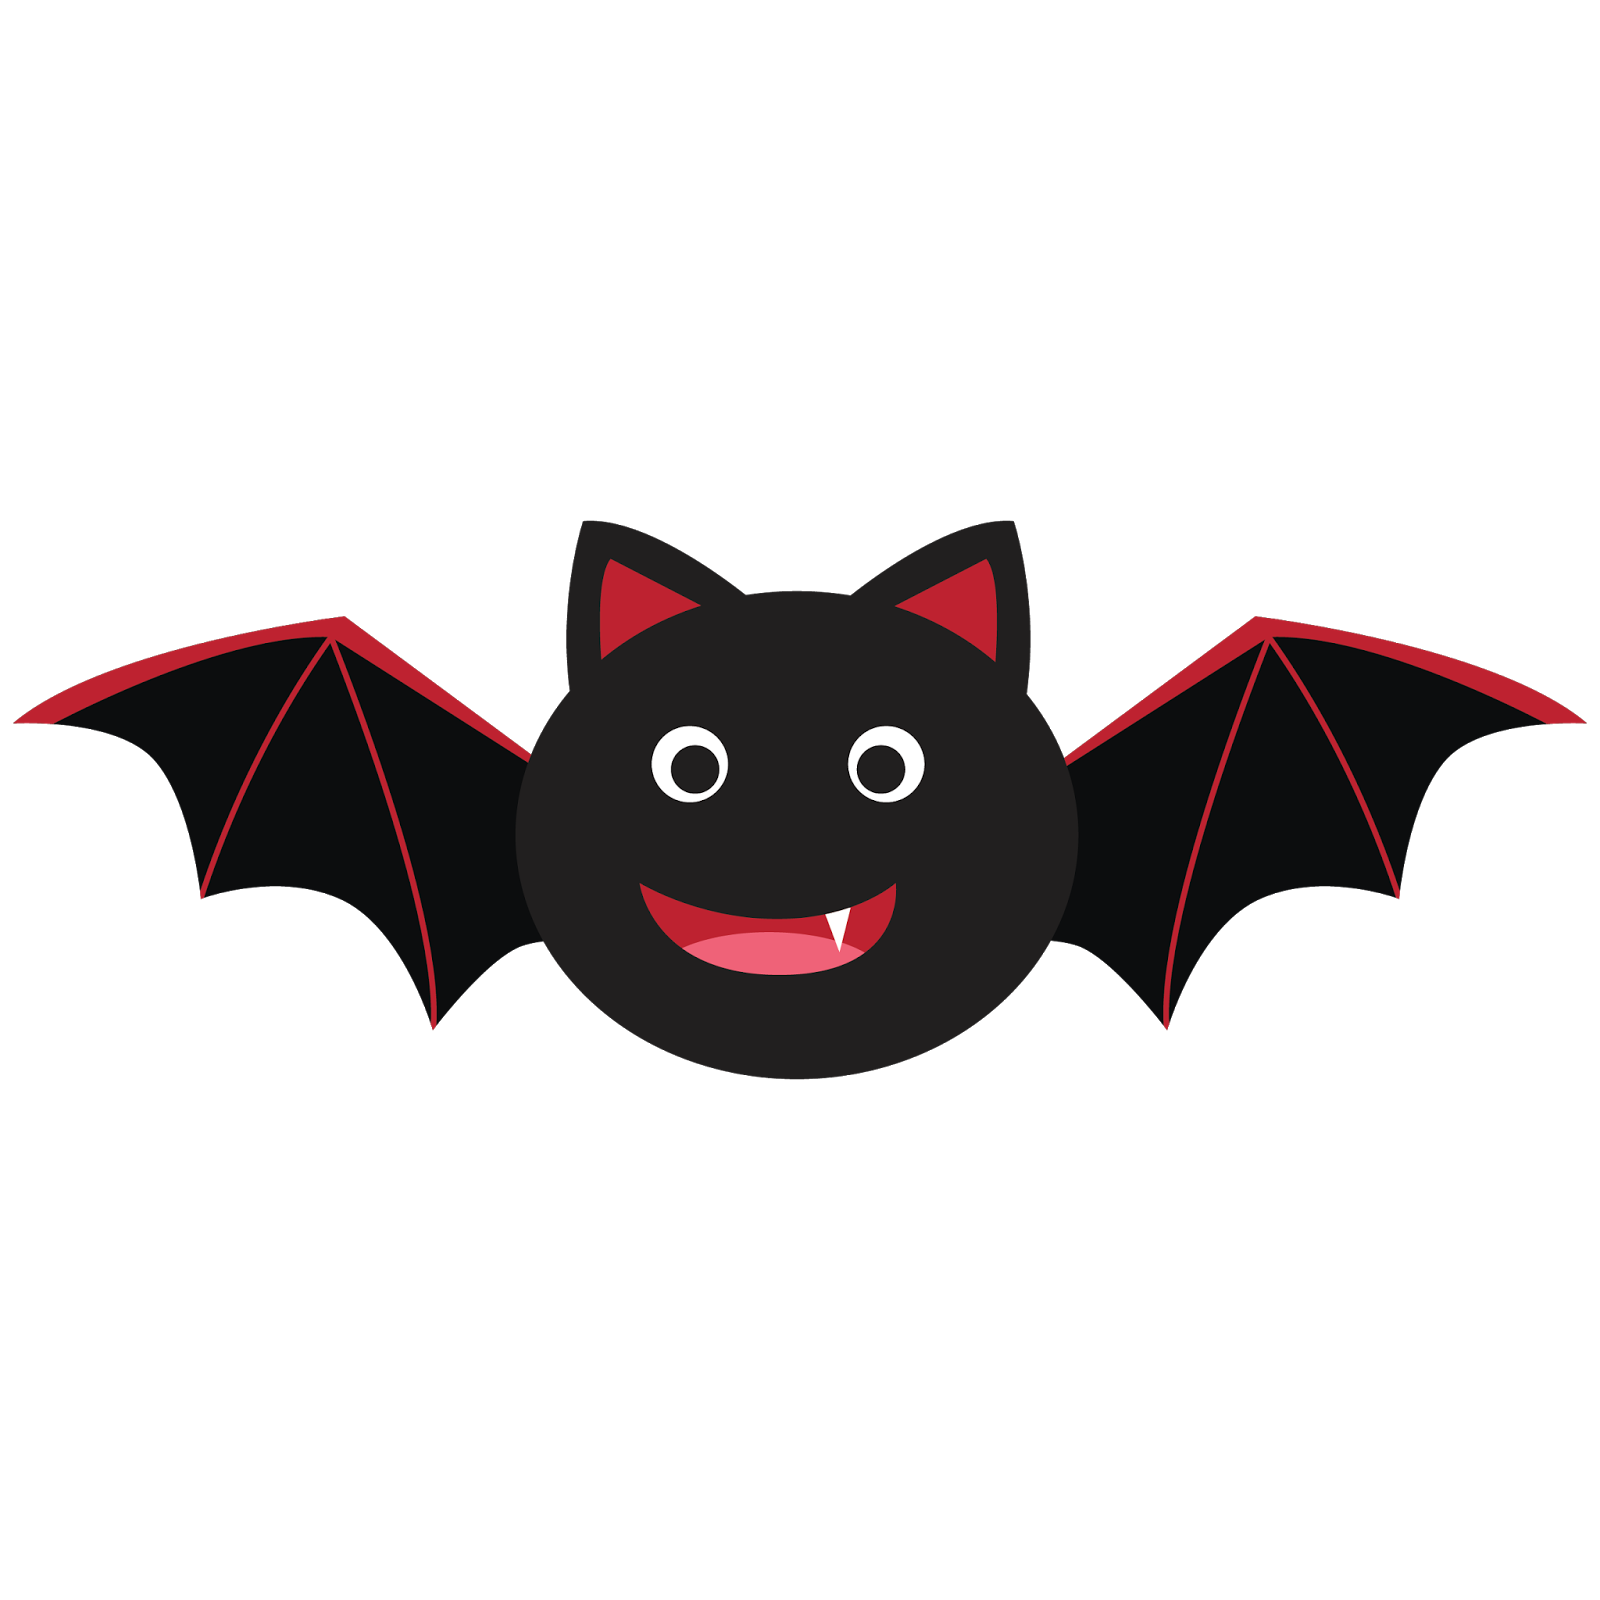 bat clipart for my 15month old alfie i love bats halloween rh pinterest com Halloween Black Bat Clip Art Happy Halloween Clip Art